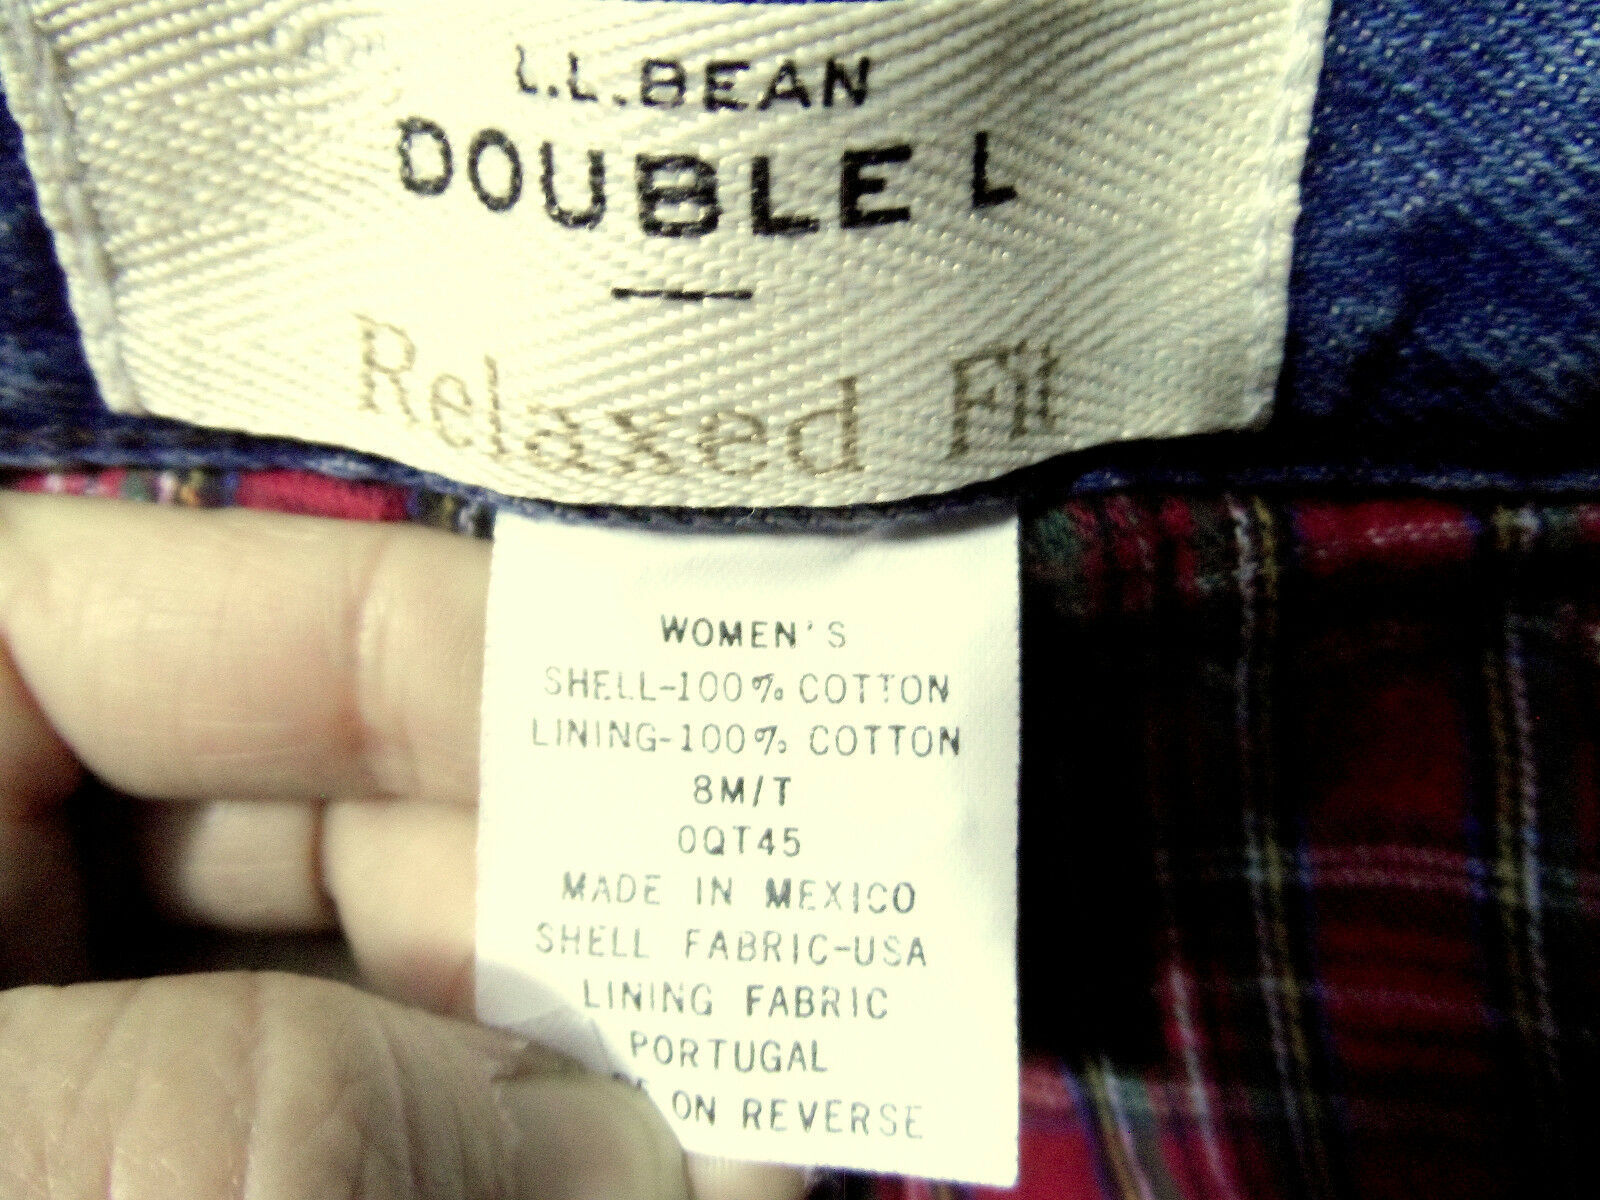 L.L. BEAN Flannel Lined JEANS womens 8 M Relaxed fit DOUBLE L Medium wash 30x32